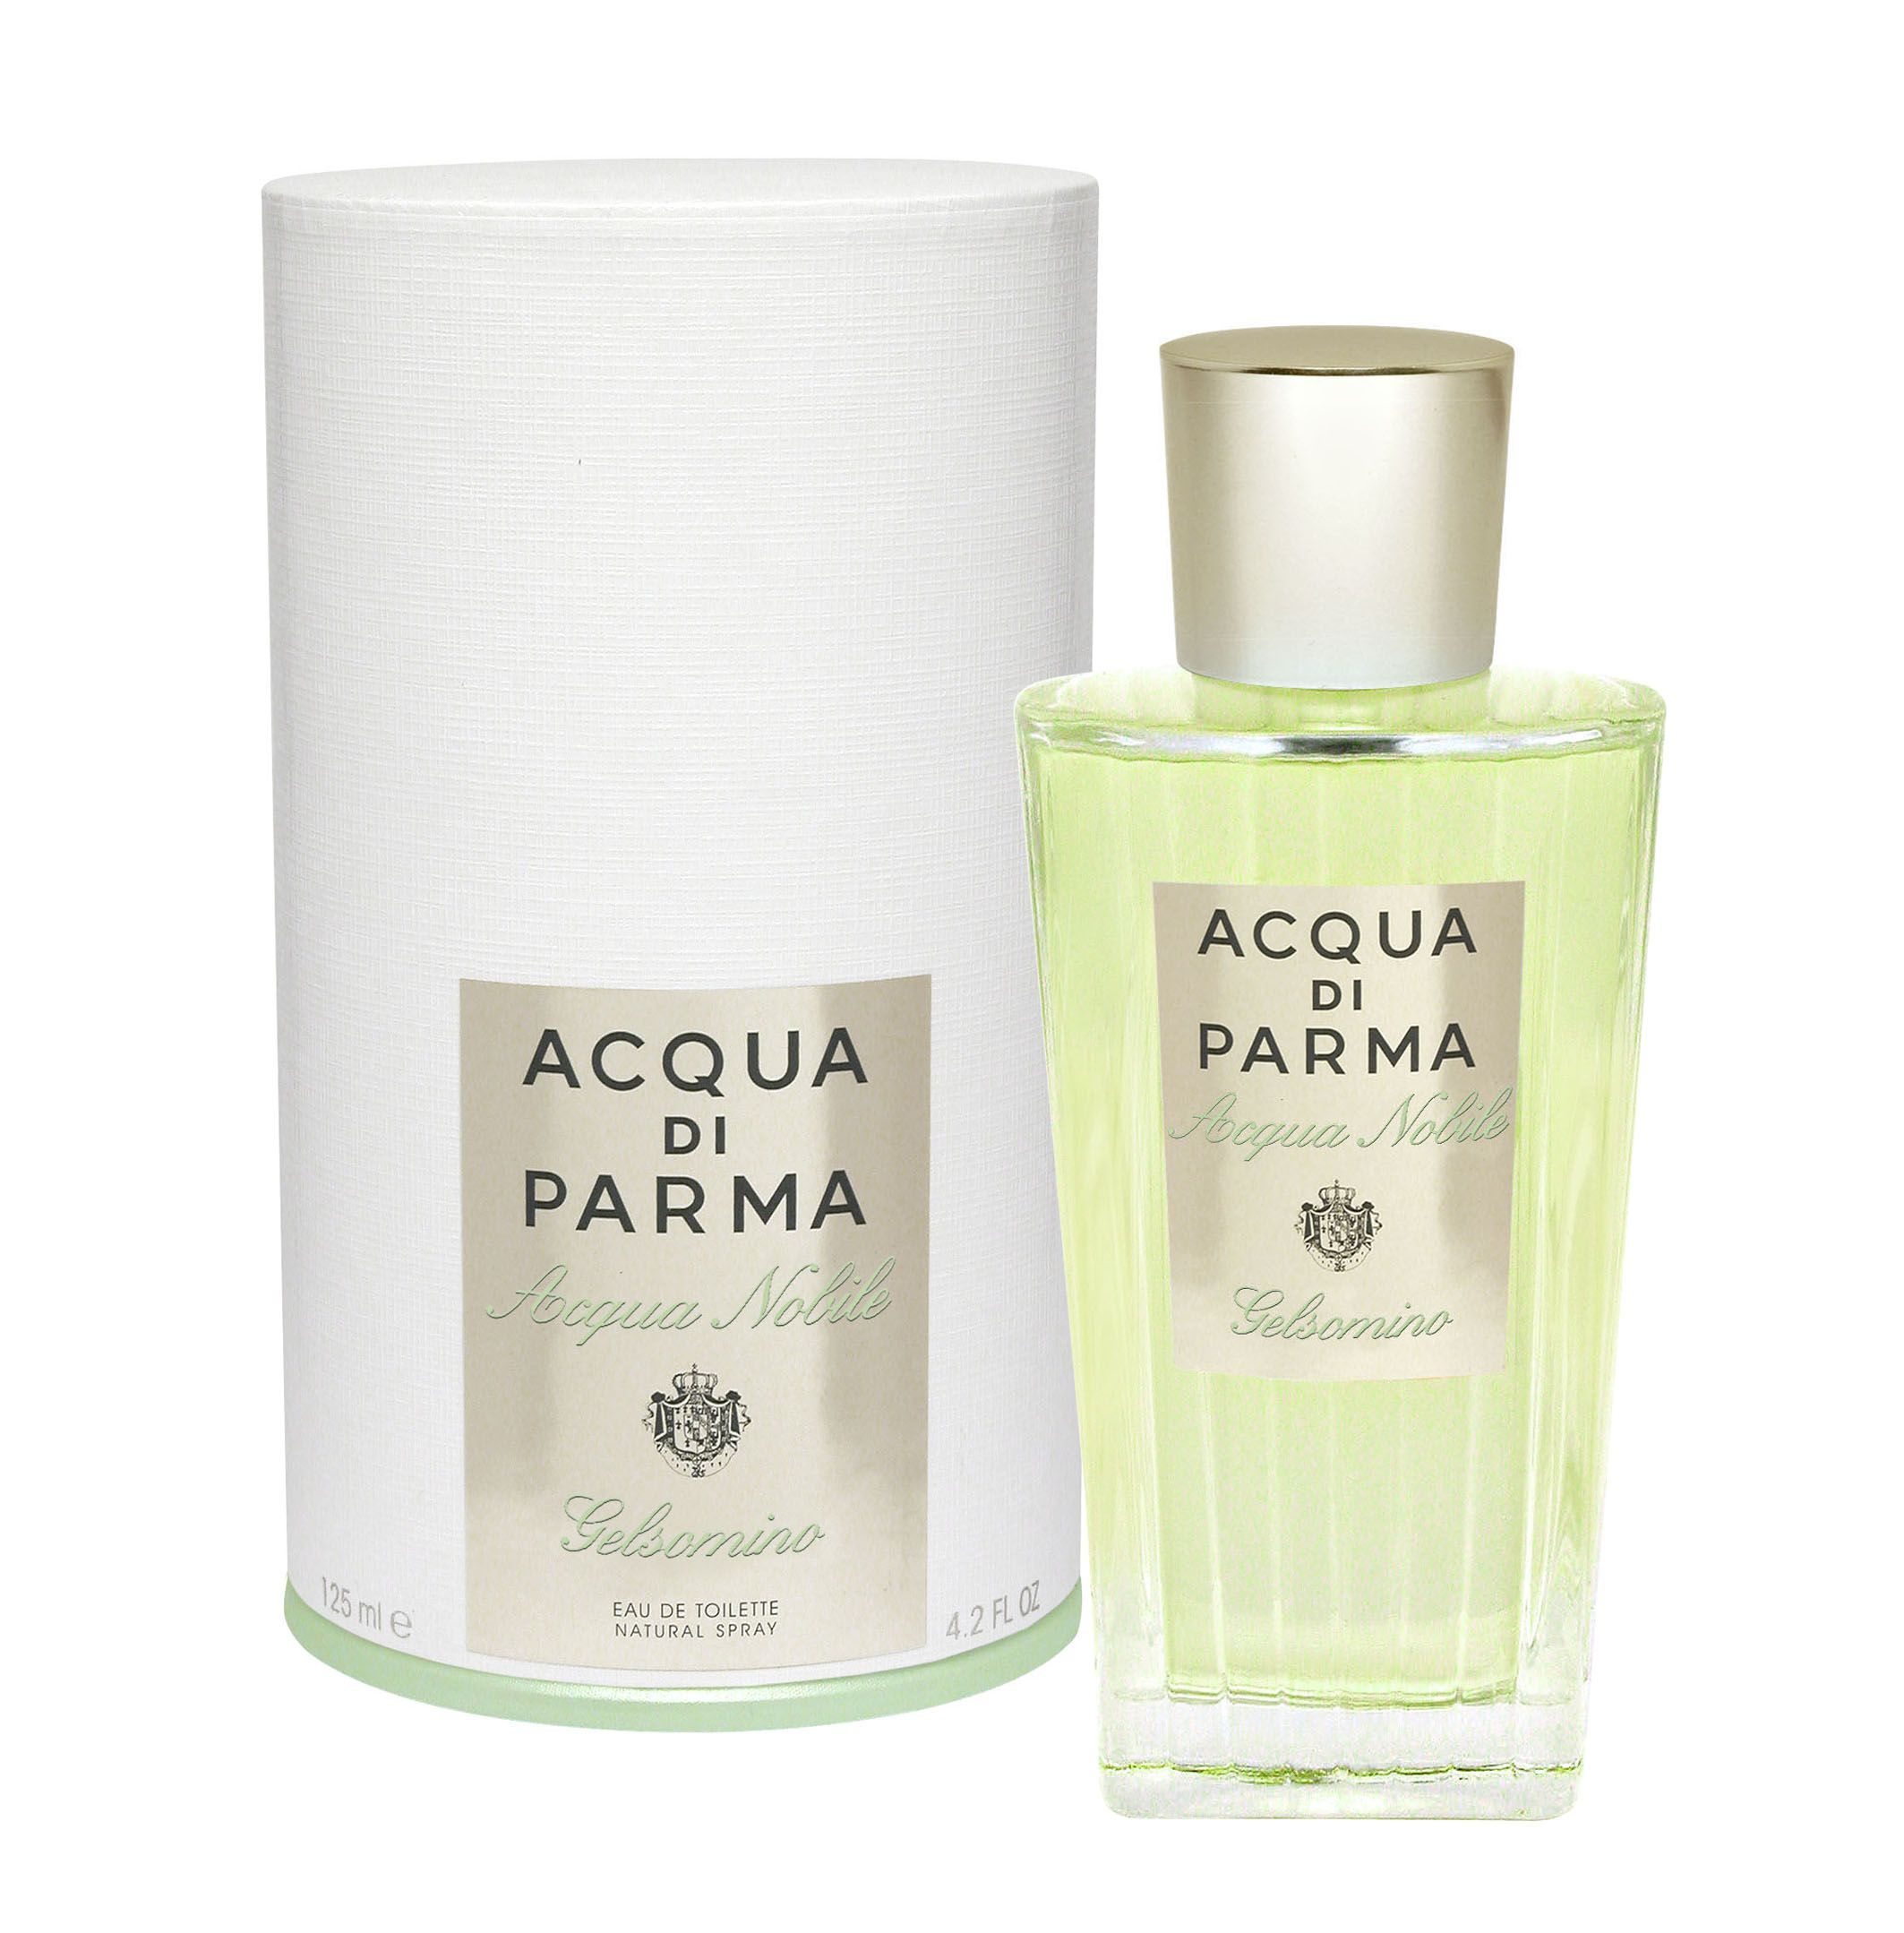 Acqua Nobile Gelsomino Eau de Toilette 125ml